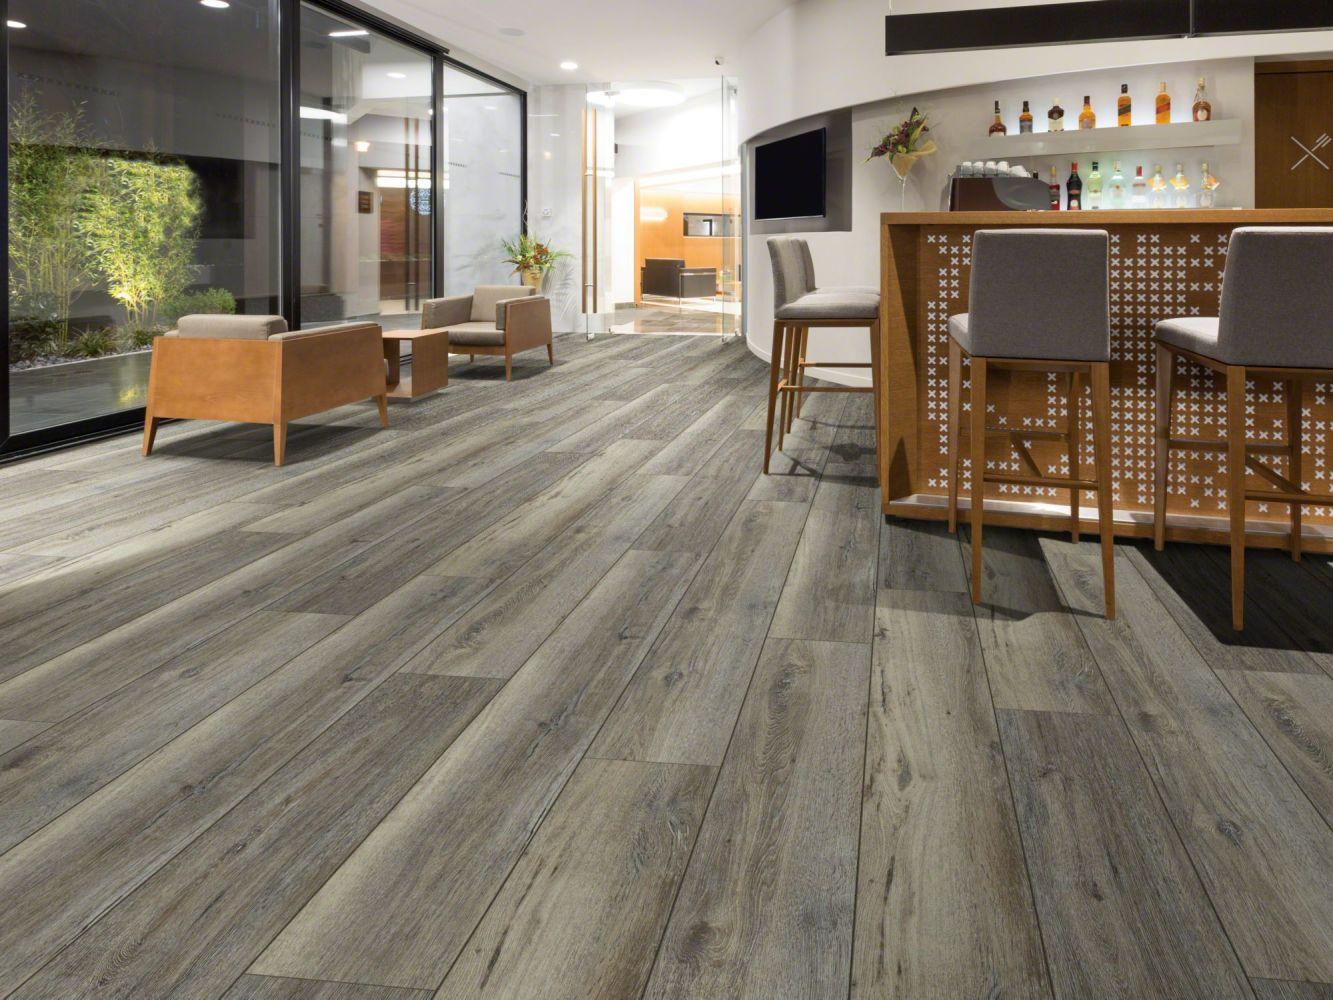 Shaw Floors Resilient Residential Aged Oak 720c Plus Silver Oak 05003_517SA